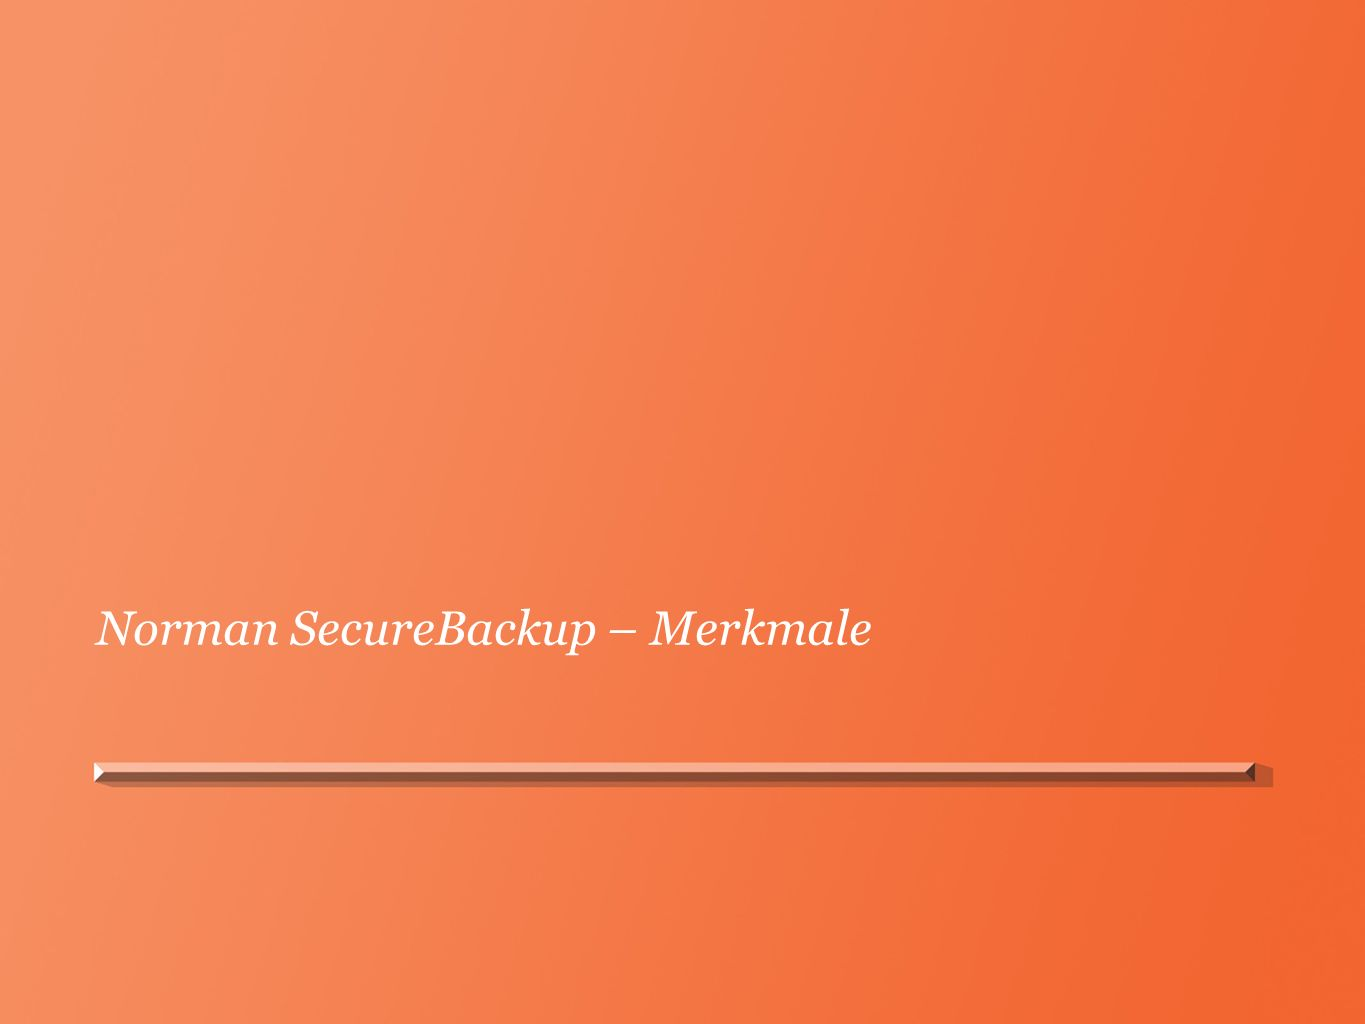 Norman SecureBackup – Merkmale